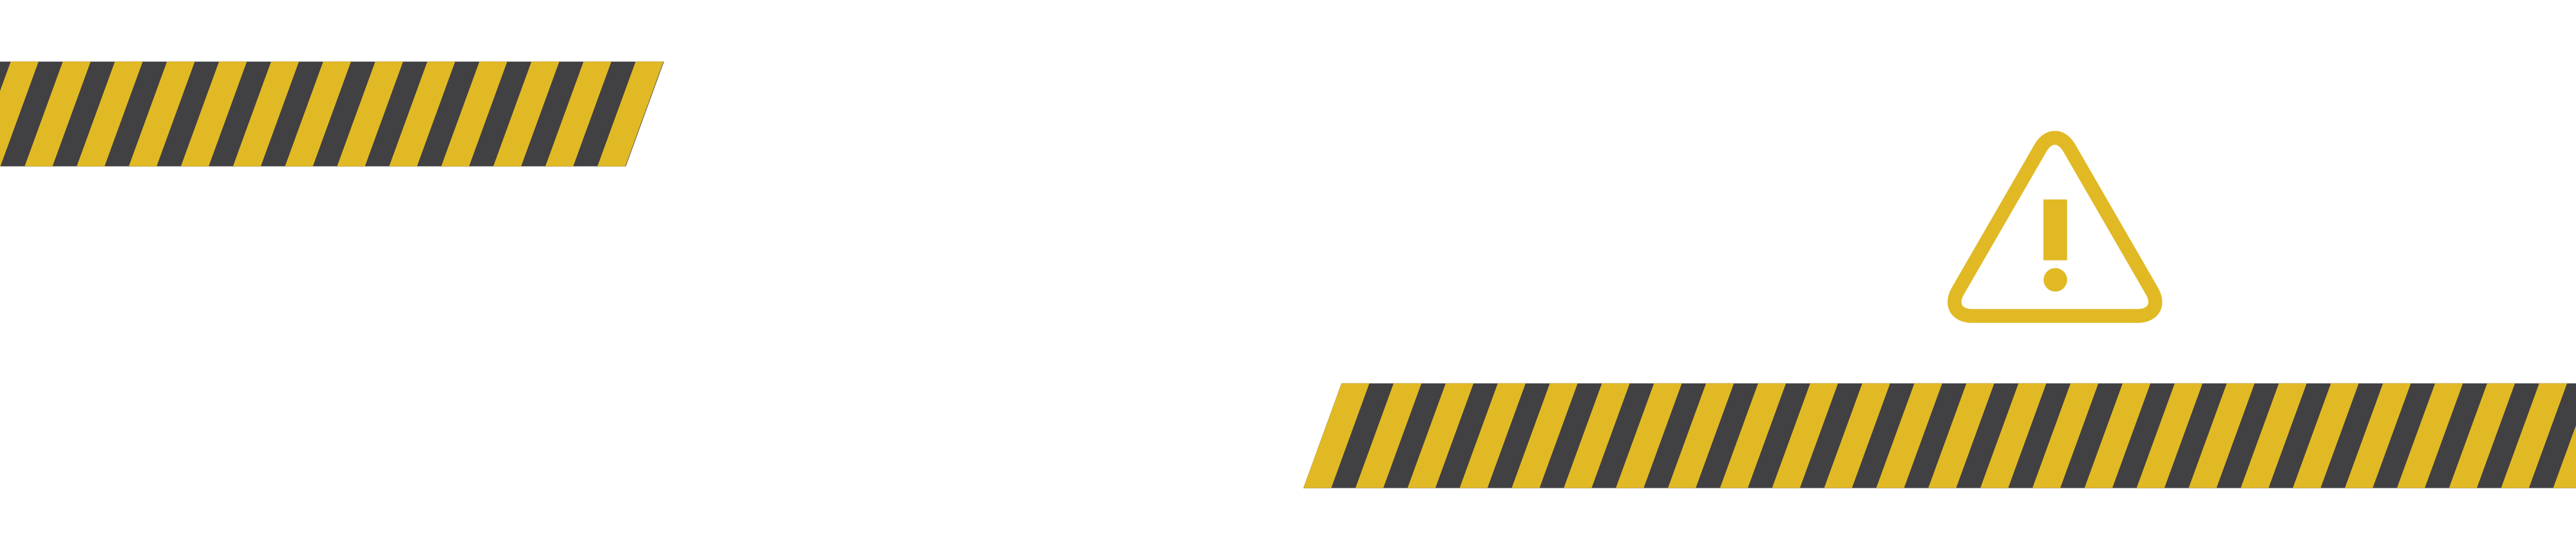 Service Construction Special